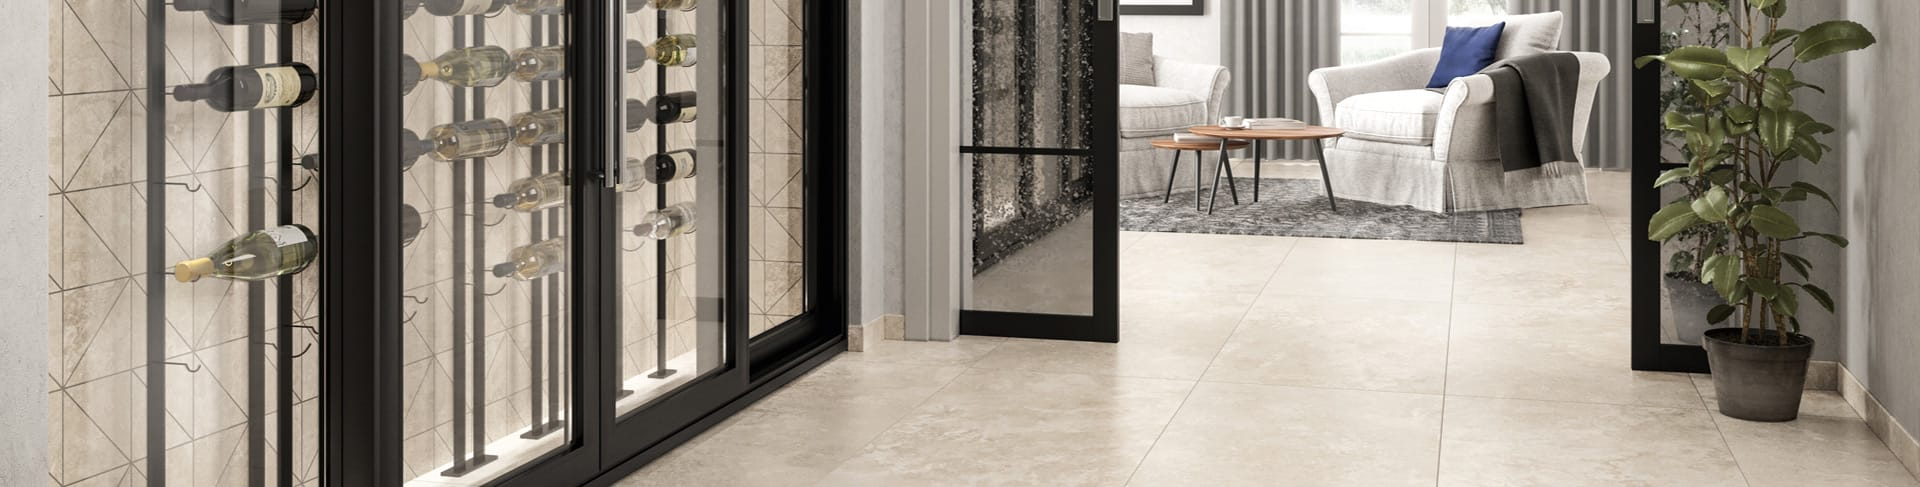 Beautiful porcelain tile hallway with a travertine look from the Atlas Concorde USA Shore Collection